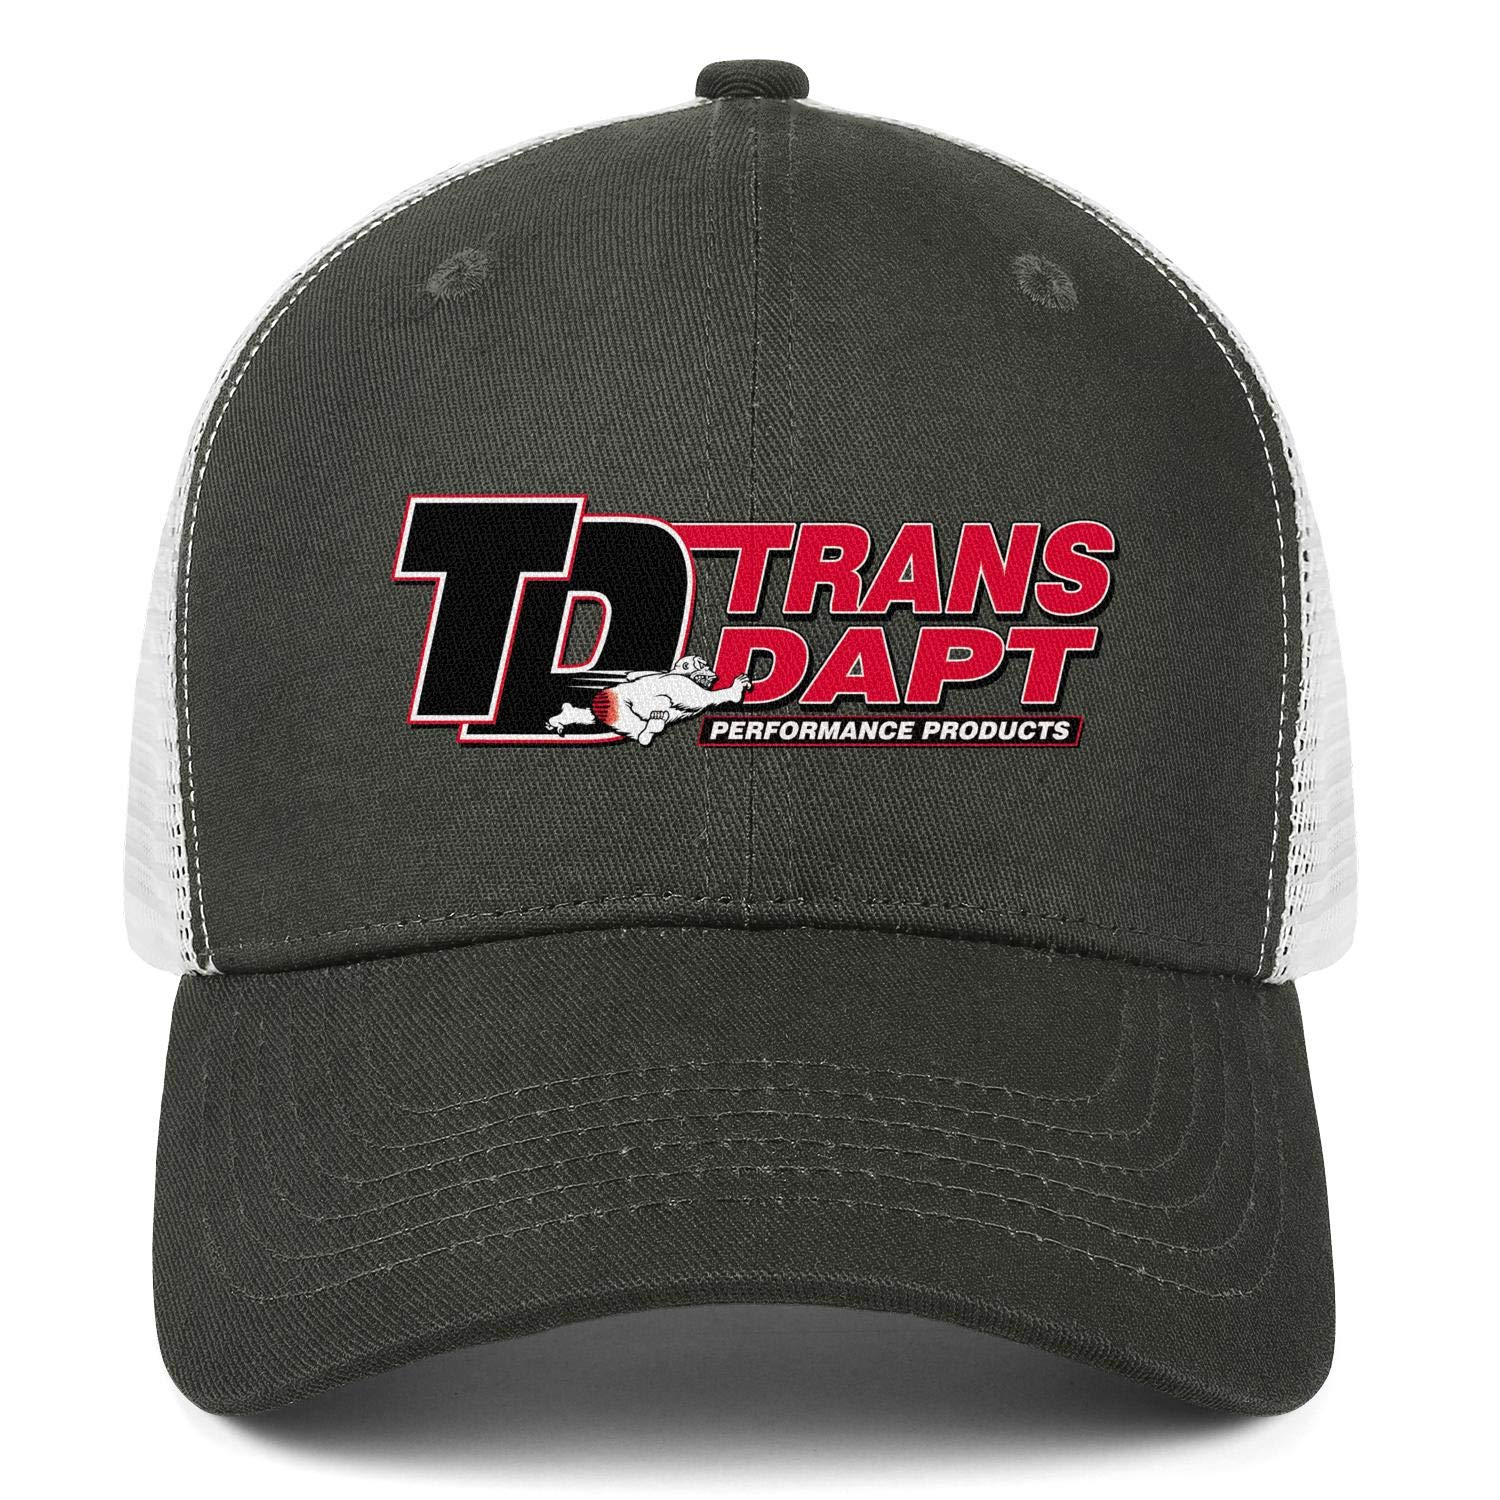 Mens Womens Mesh Back Trucker Hat Summer Mesh Cap COOLGOOD Trans-Dapt-Performance-Products